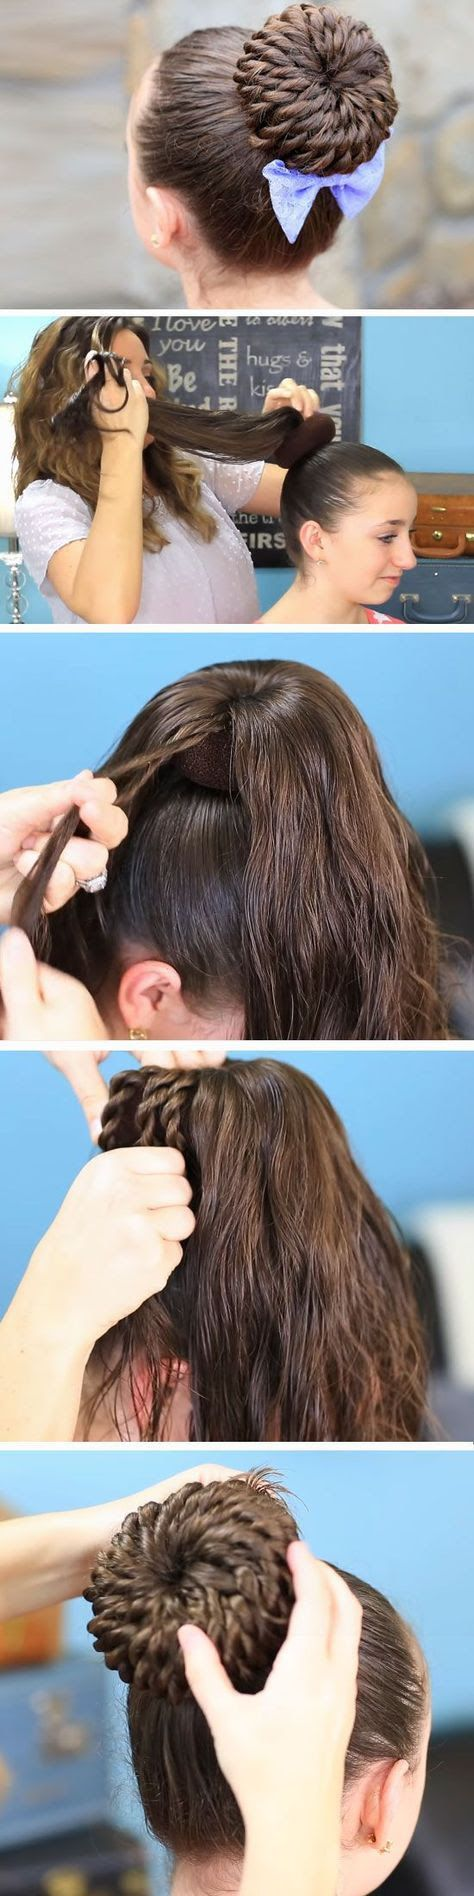 dapple dachshund homecoming hairstyles and more pins popular on